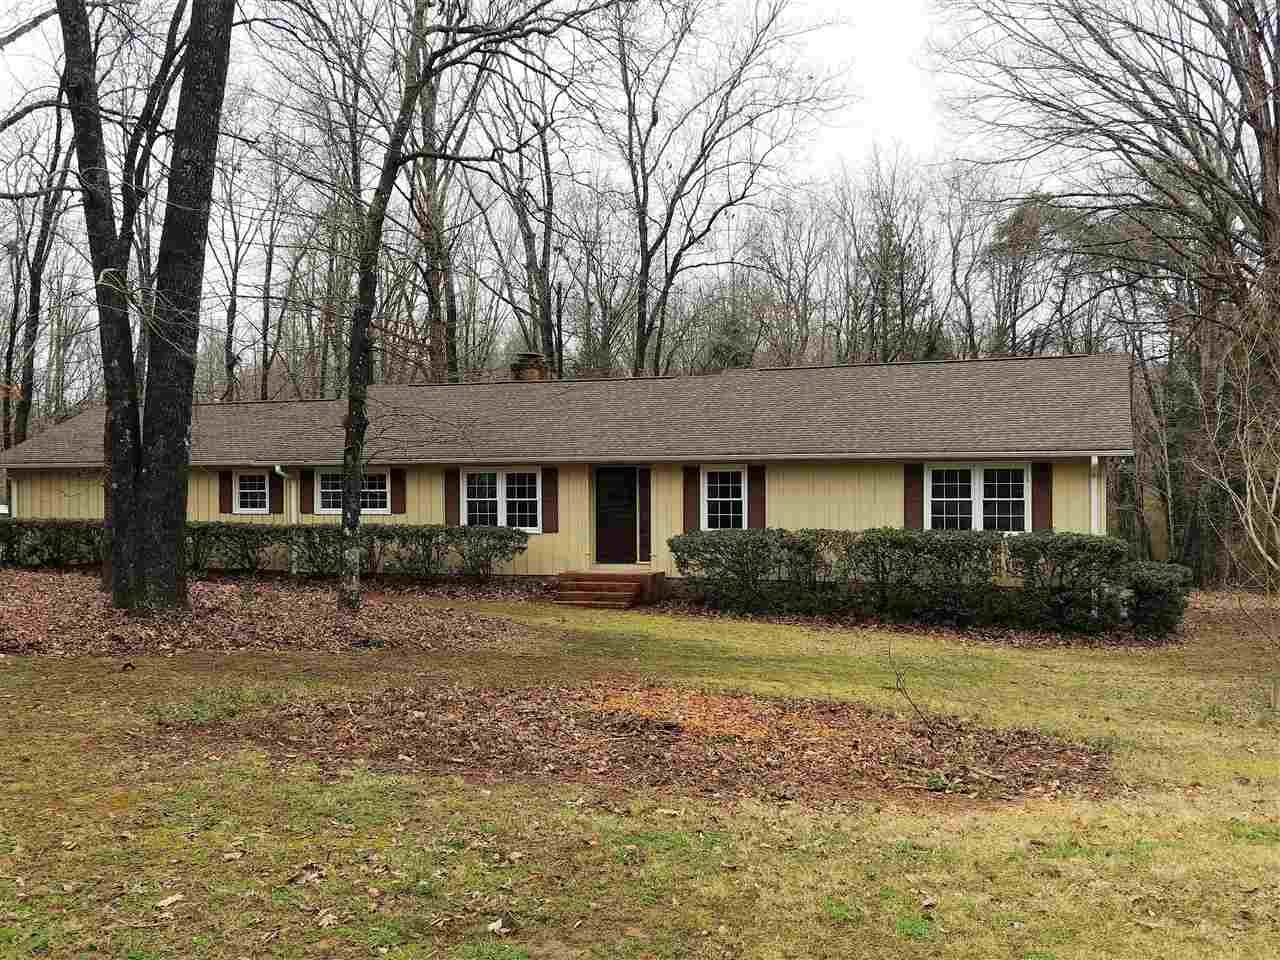 1809 Timberlake Dr, Rock Hill in York County, SC 29732 Home for Sale